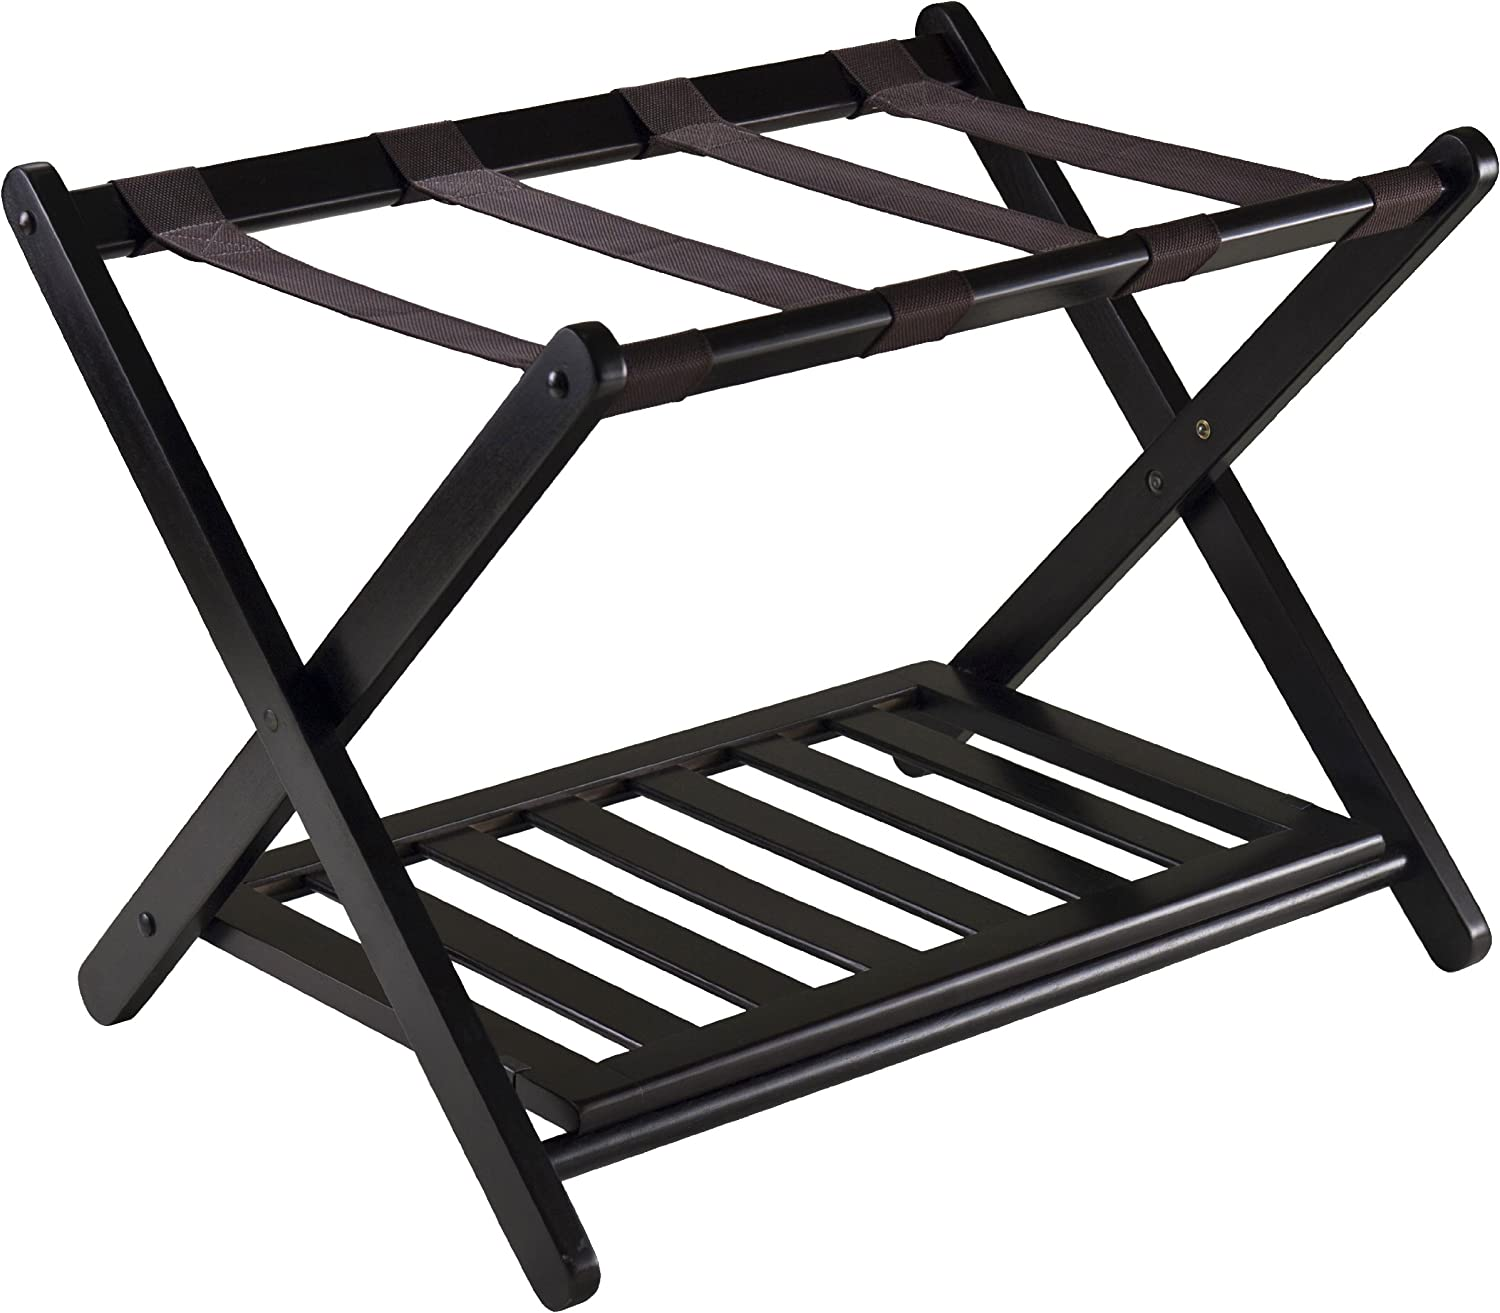 Luggage stand with shoe rack